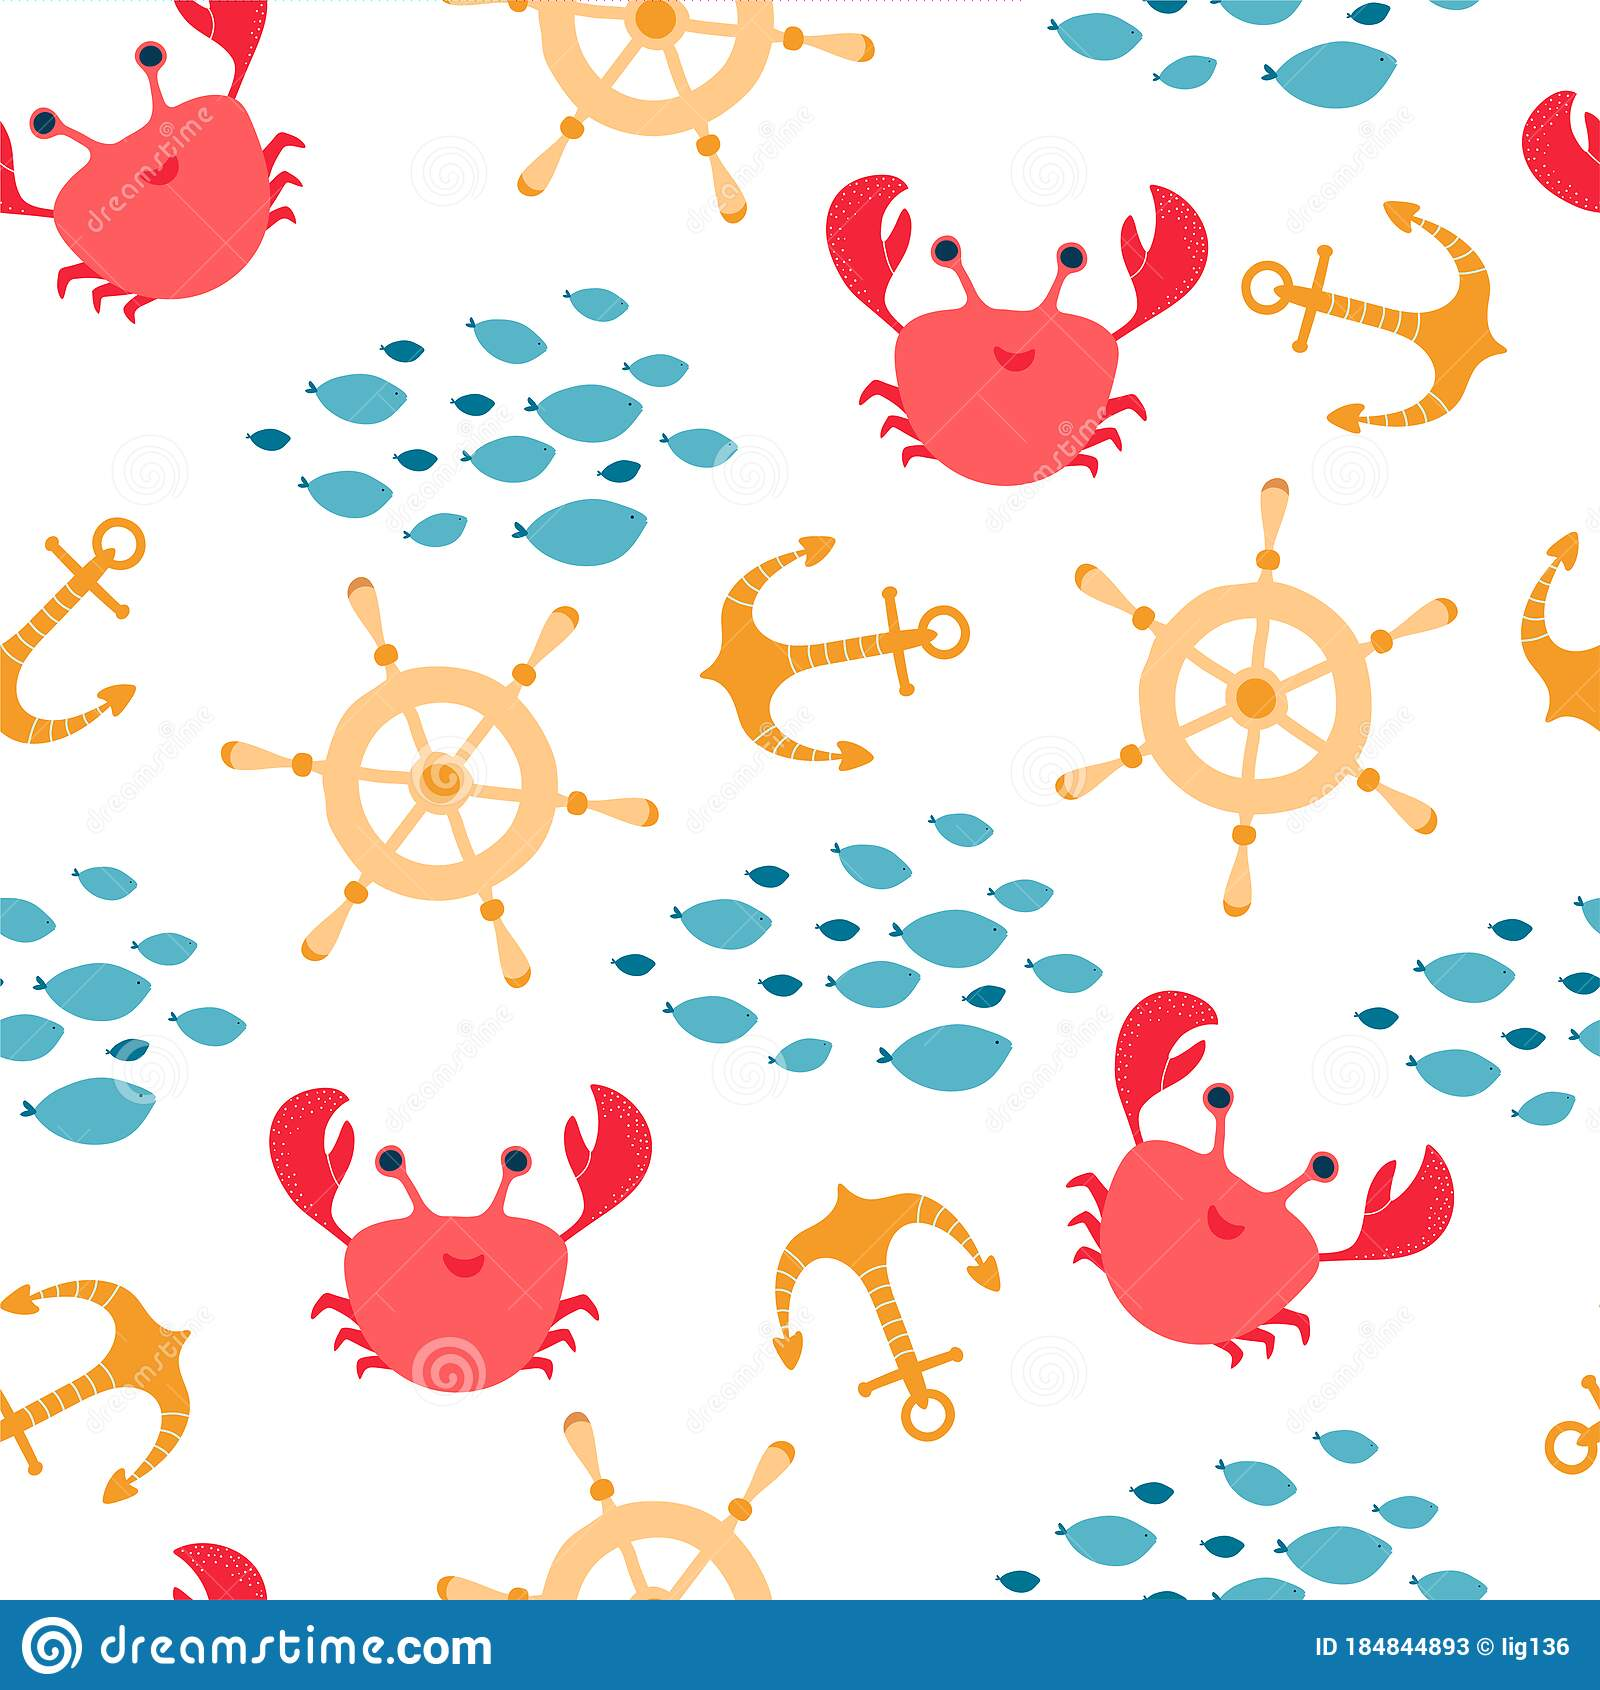 Children S Seamless Pattern With Crab Fish Helm Anchor In Cartoon Style Texture For Kids Room Design Wallpaper Stock Vector Illustration Of Captain Child 184844893